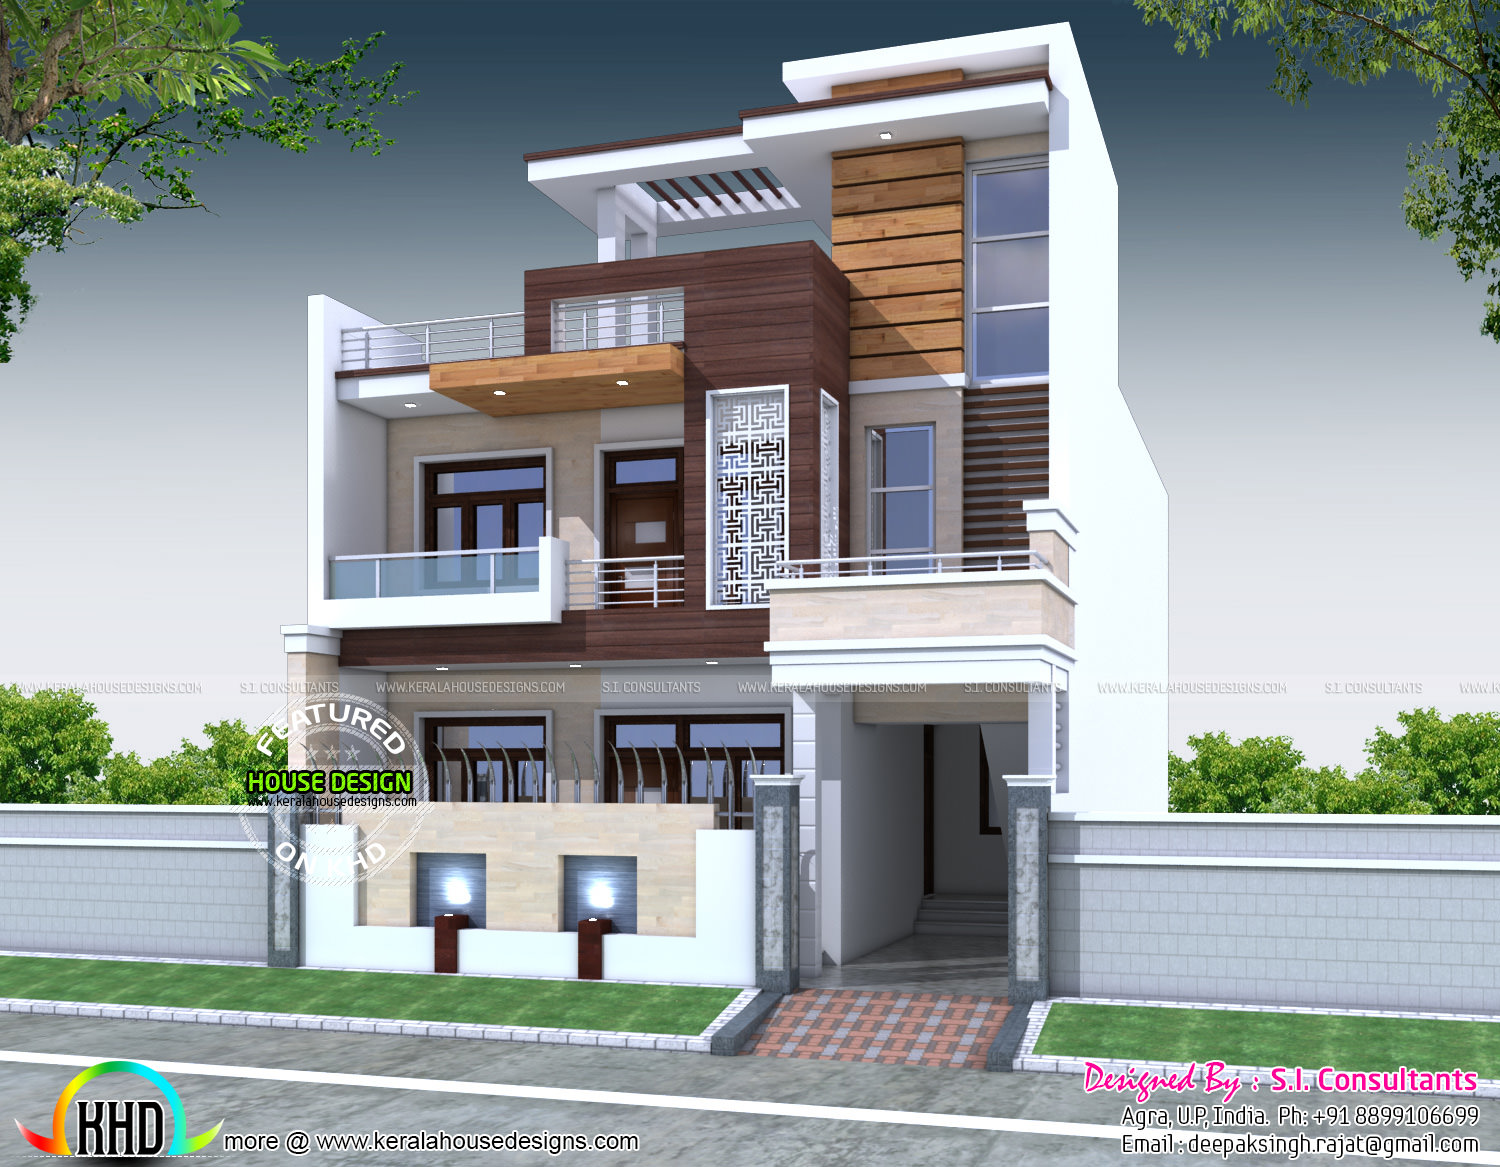 Decorative 5 bedroom house architecture kerala home for Contemporary indian house elevations